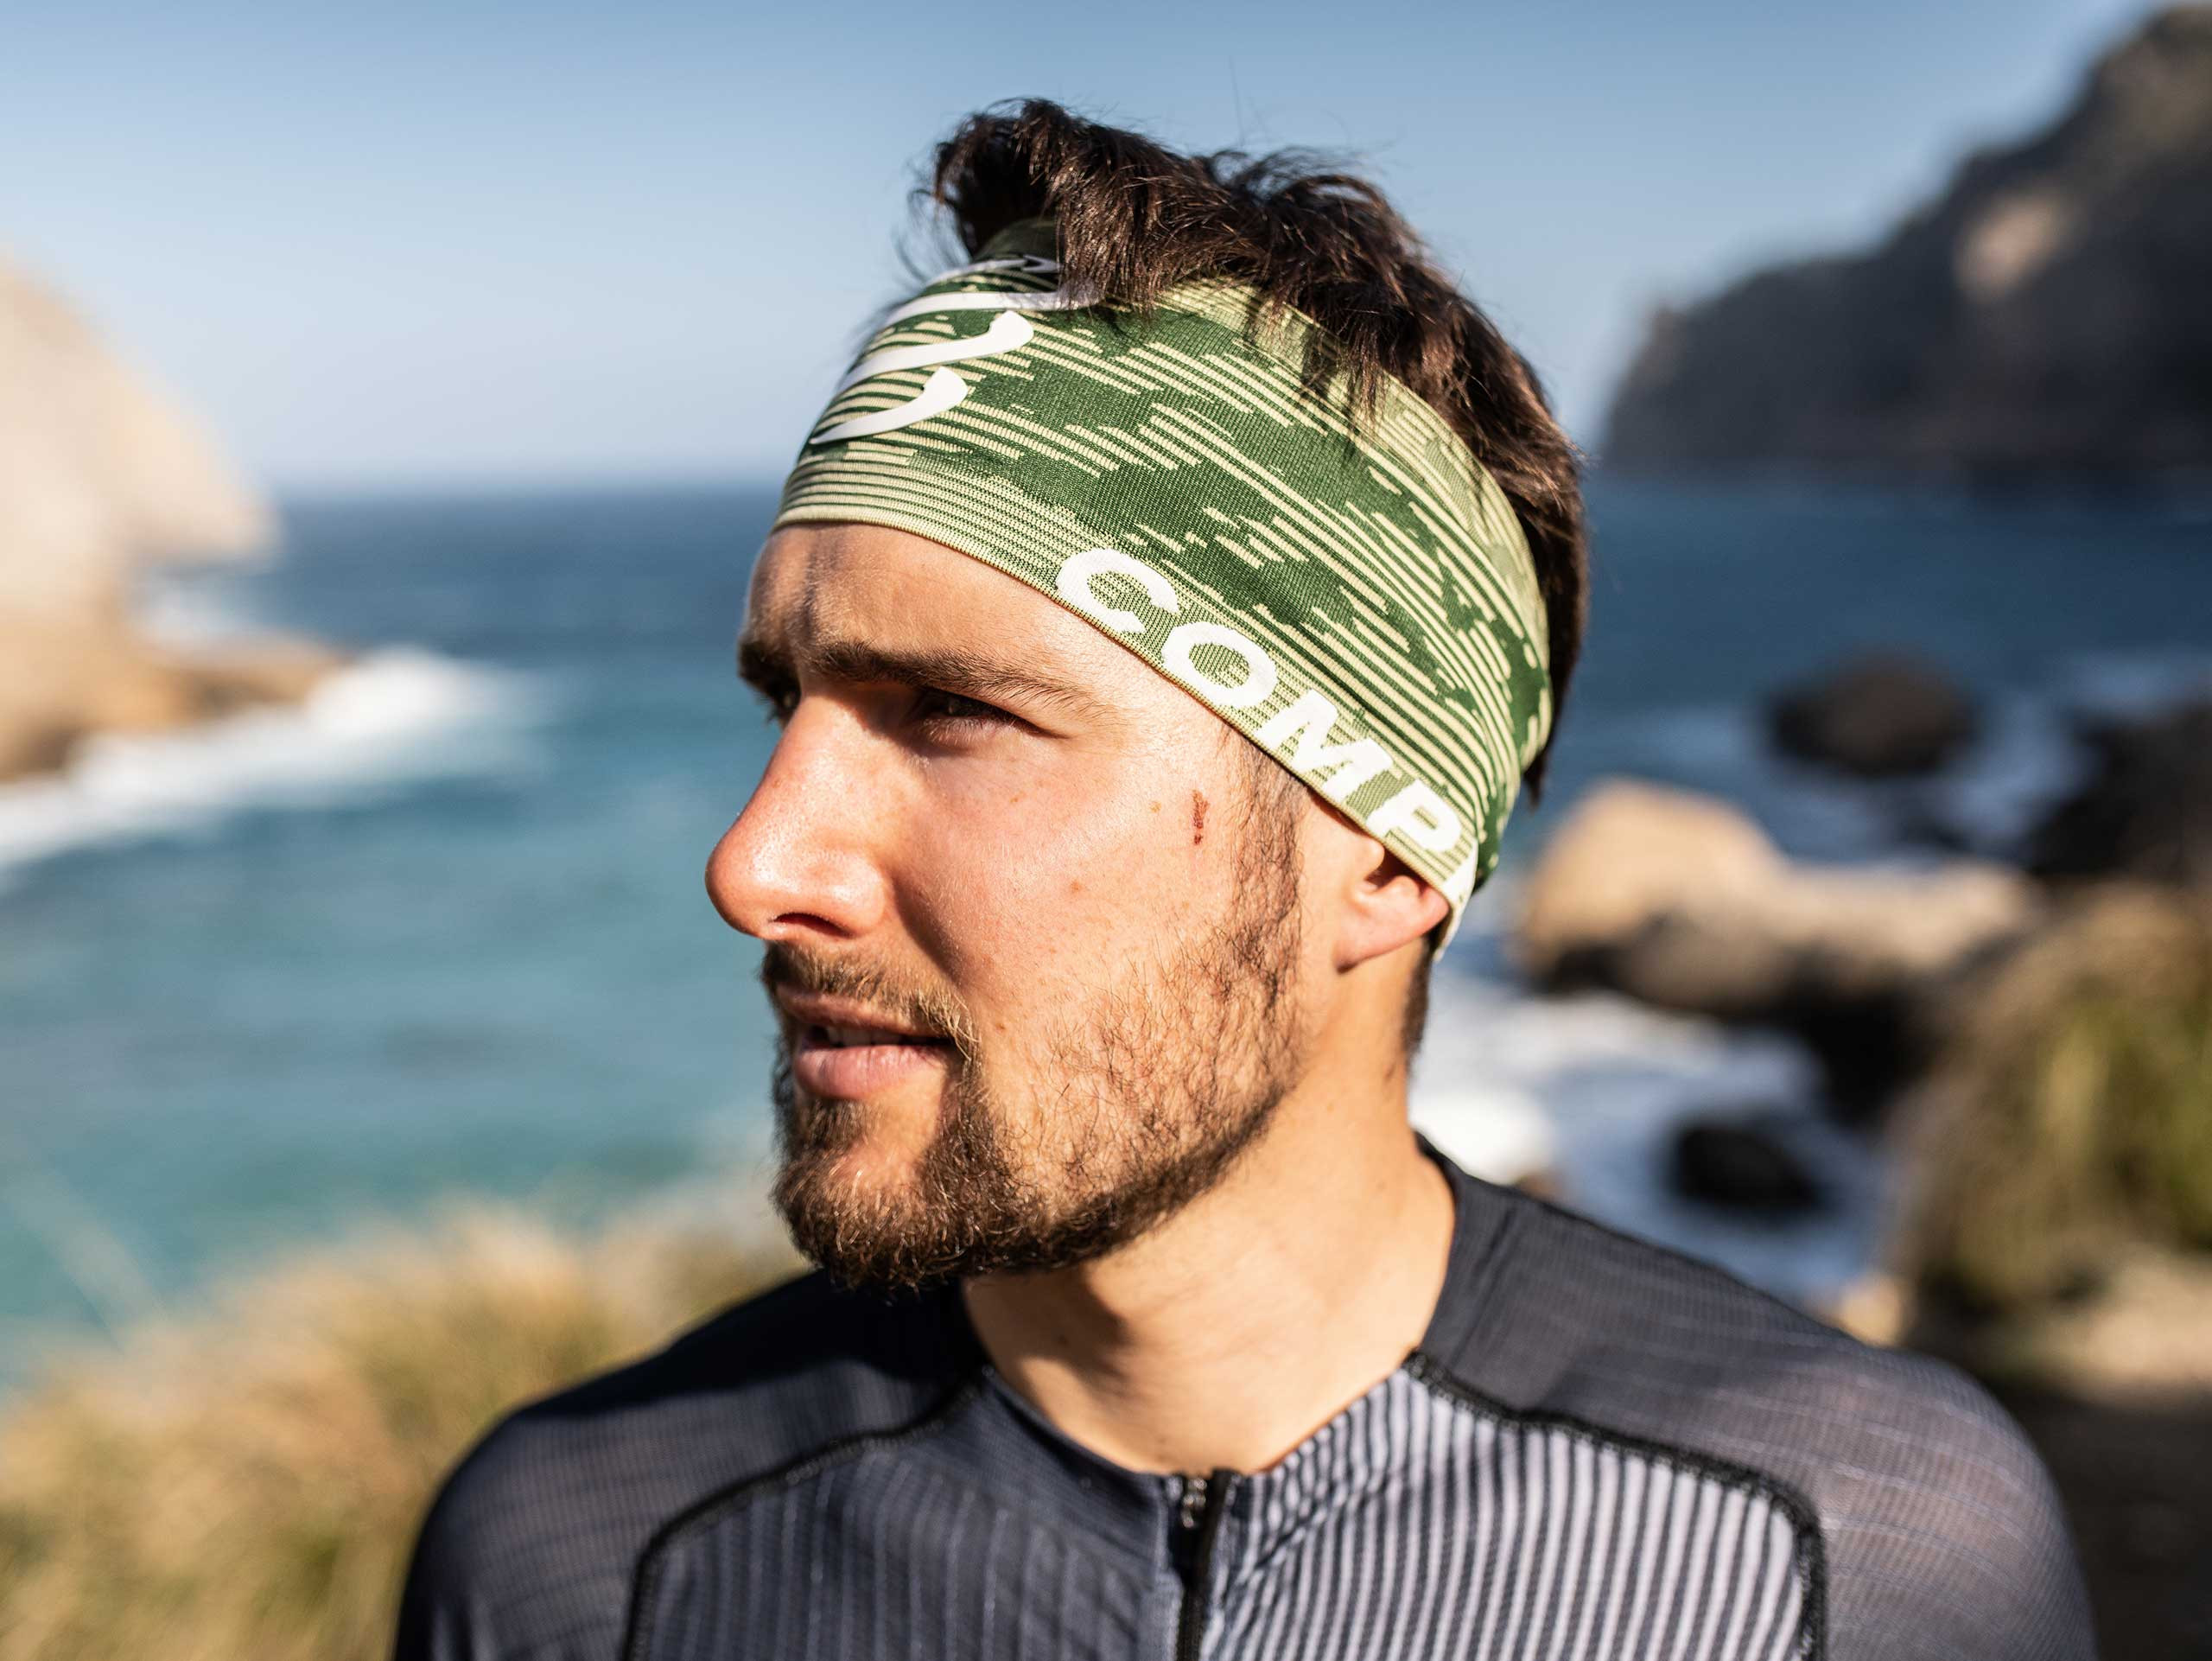 Headband On/Off camo